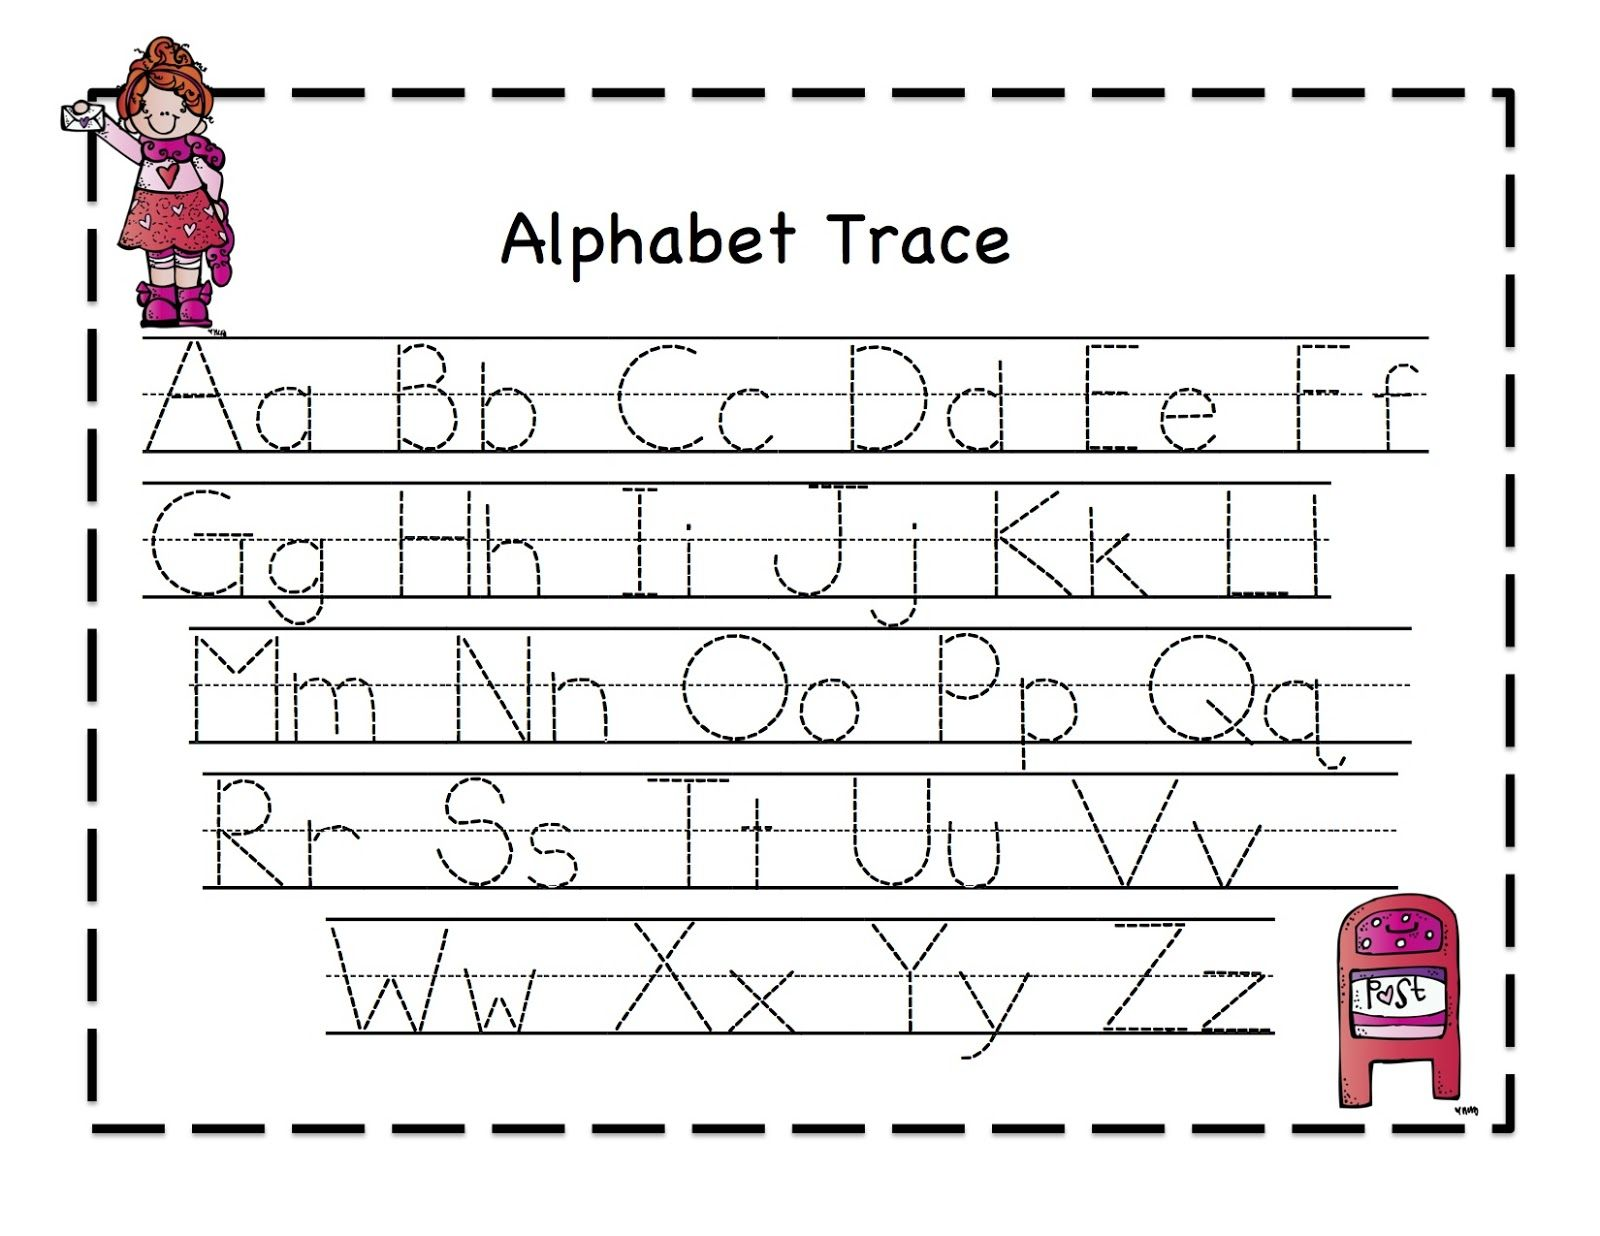 ABC Tracing Sheets for Preschool Kids Kiddo Shelter – Alphabet Trace Worksheet